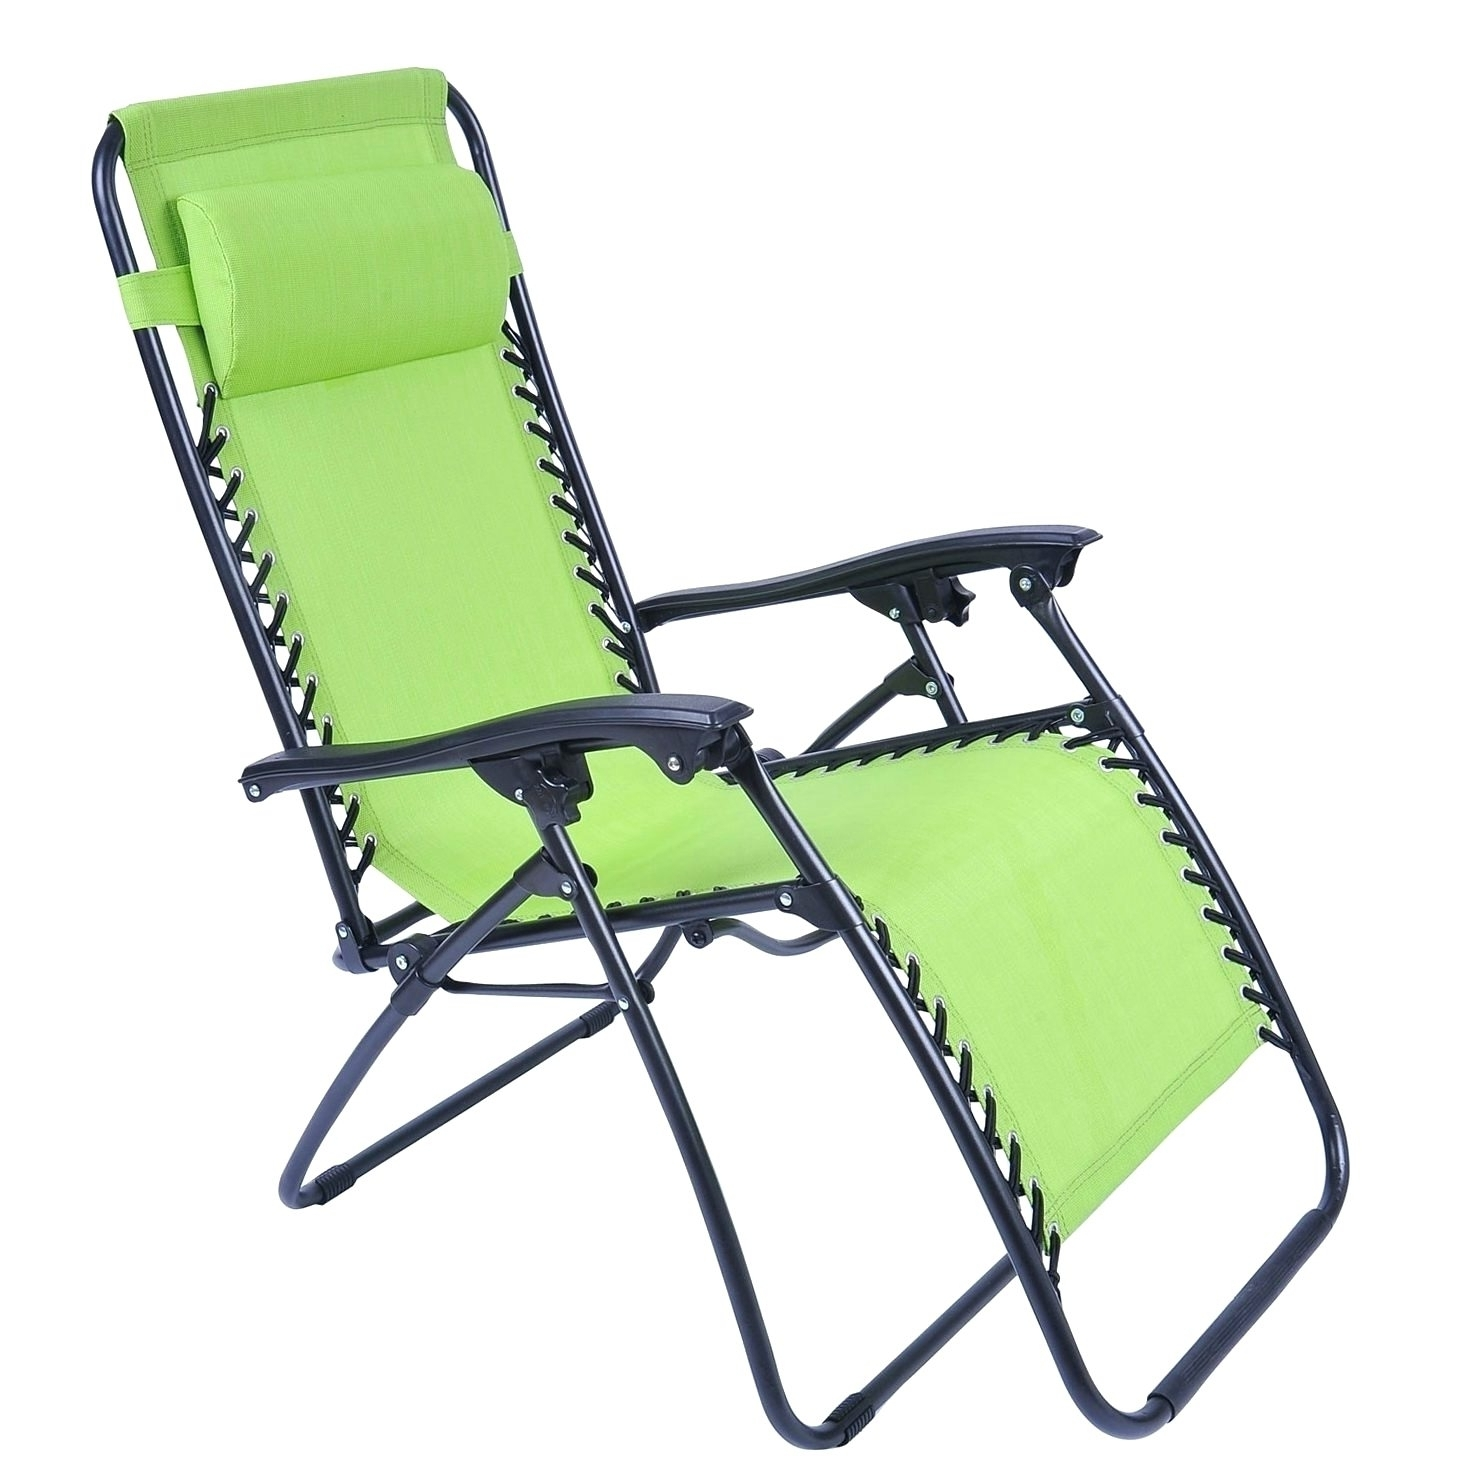 Heavy Duty Outdoor Chaise Lounge Chairs With Current Lounge Chair : Folding Lawn Chairs Sturdy Outdoor Chaise Lounge (View 5 of 15)